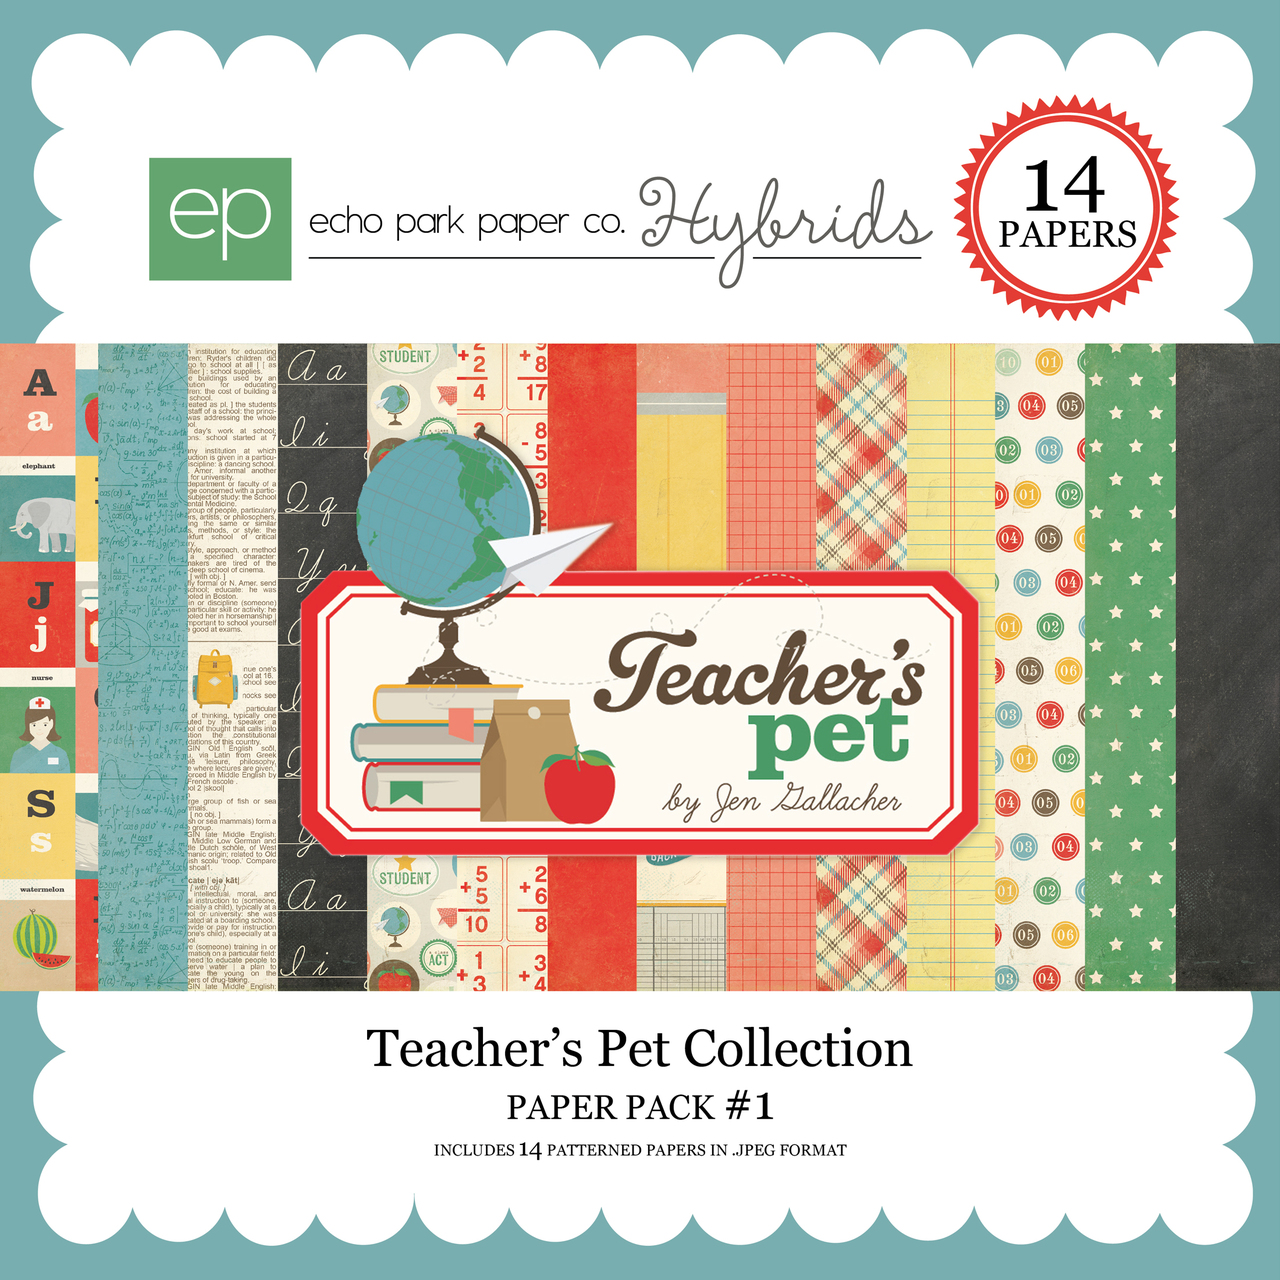 Teacher's Pet Paper Pack #1